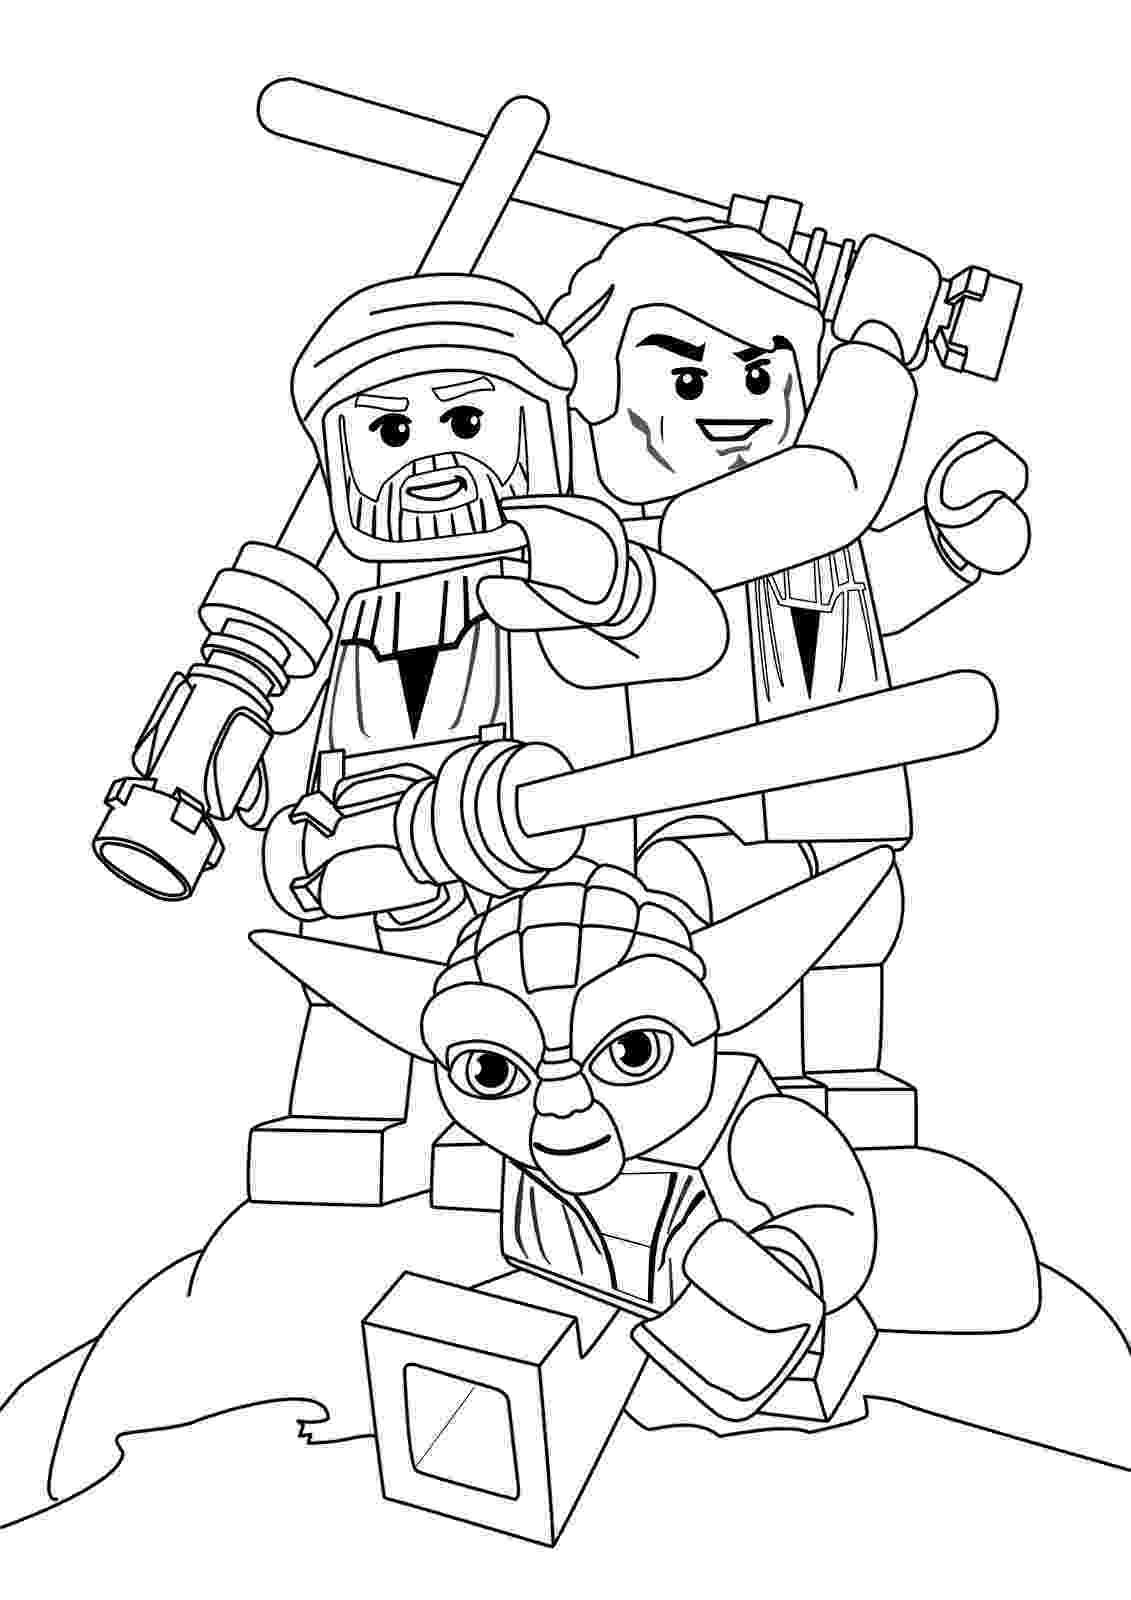 lego star wars coloring pages printable lego star wars coloring pages best coloring pages for kids pages lego coloring printable star wars